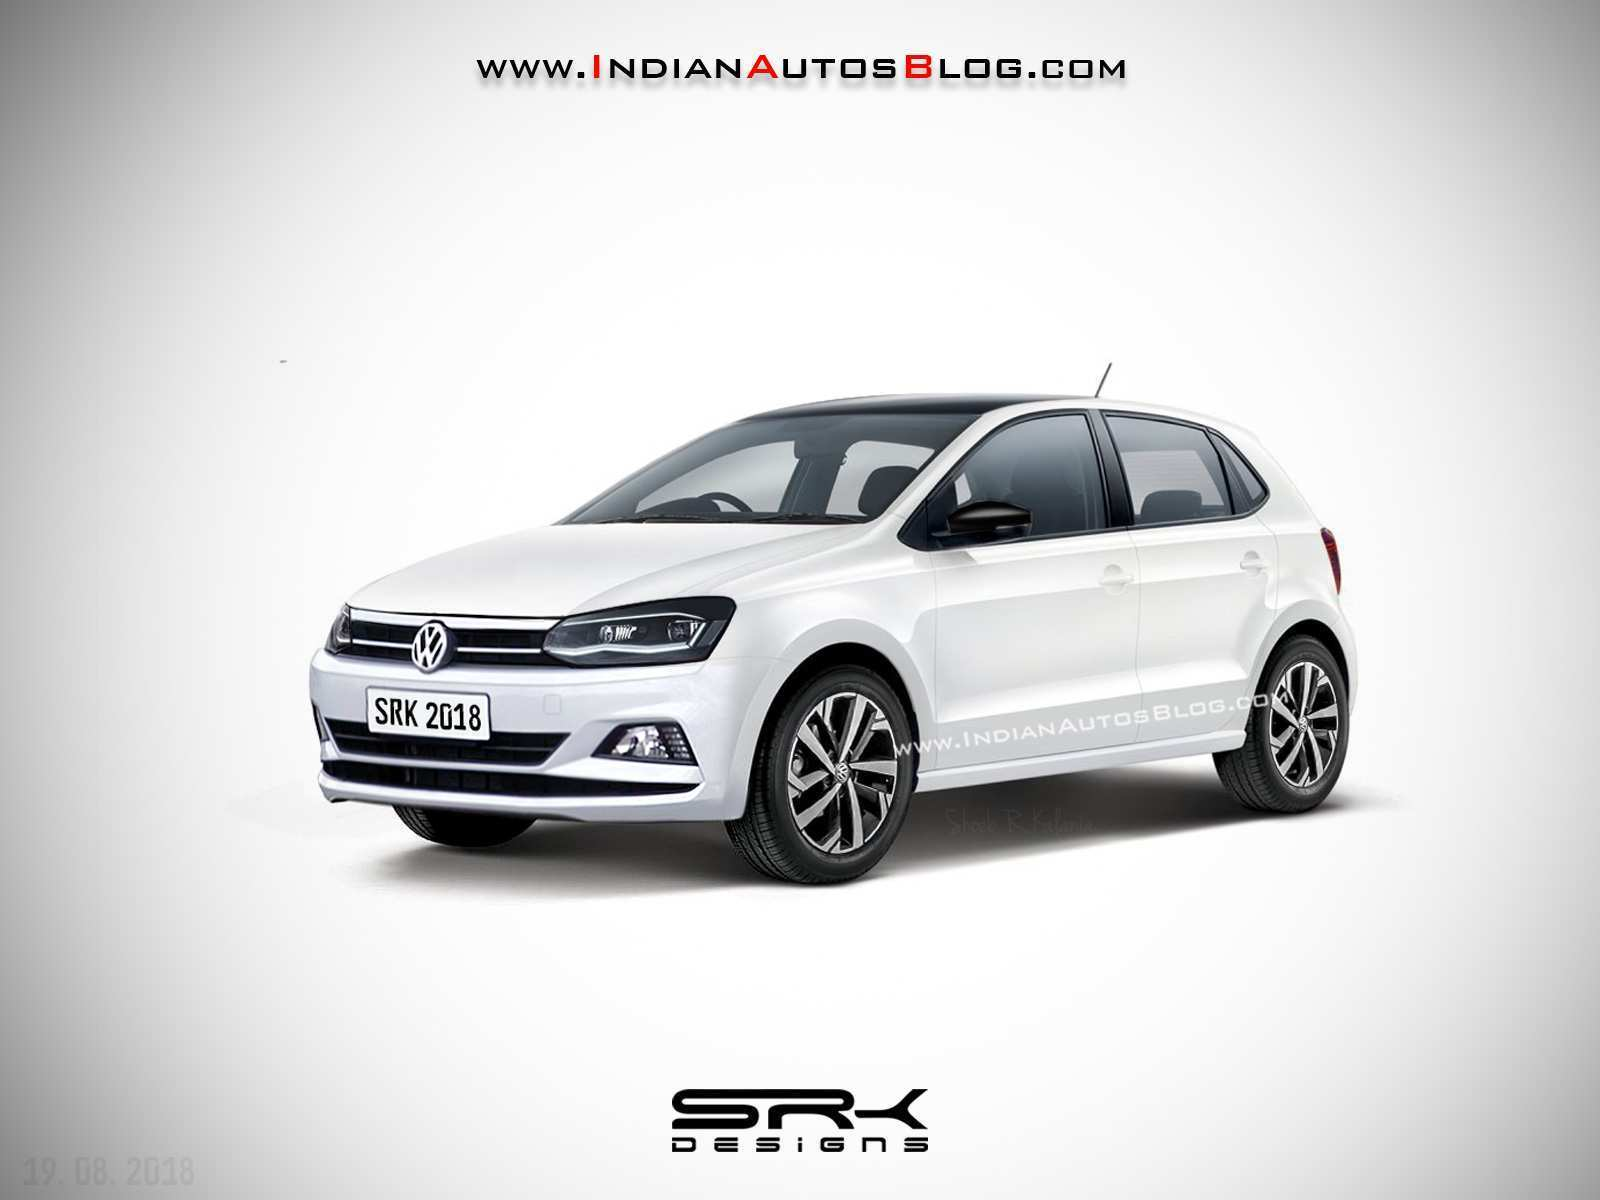 31 Great Volkswagen Polo 2019 India Launch Speed Test with Volkswagen Polo 2019 India Launch